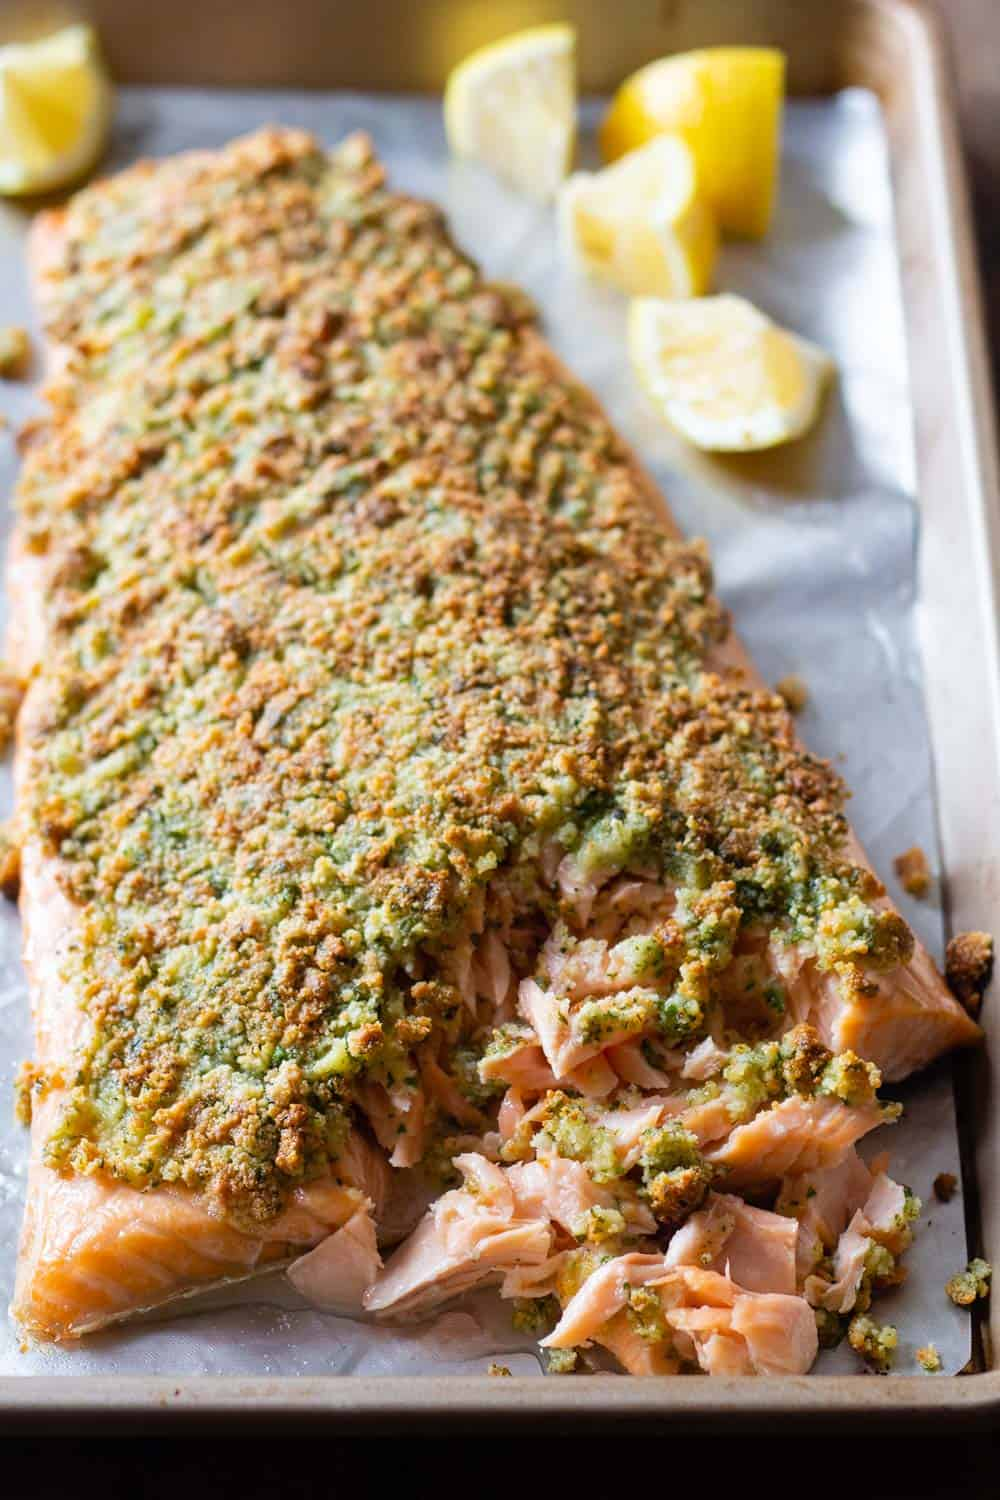 Almond curst baked salmon fillet on a baking sheet